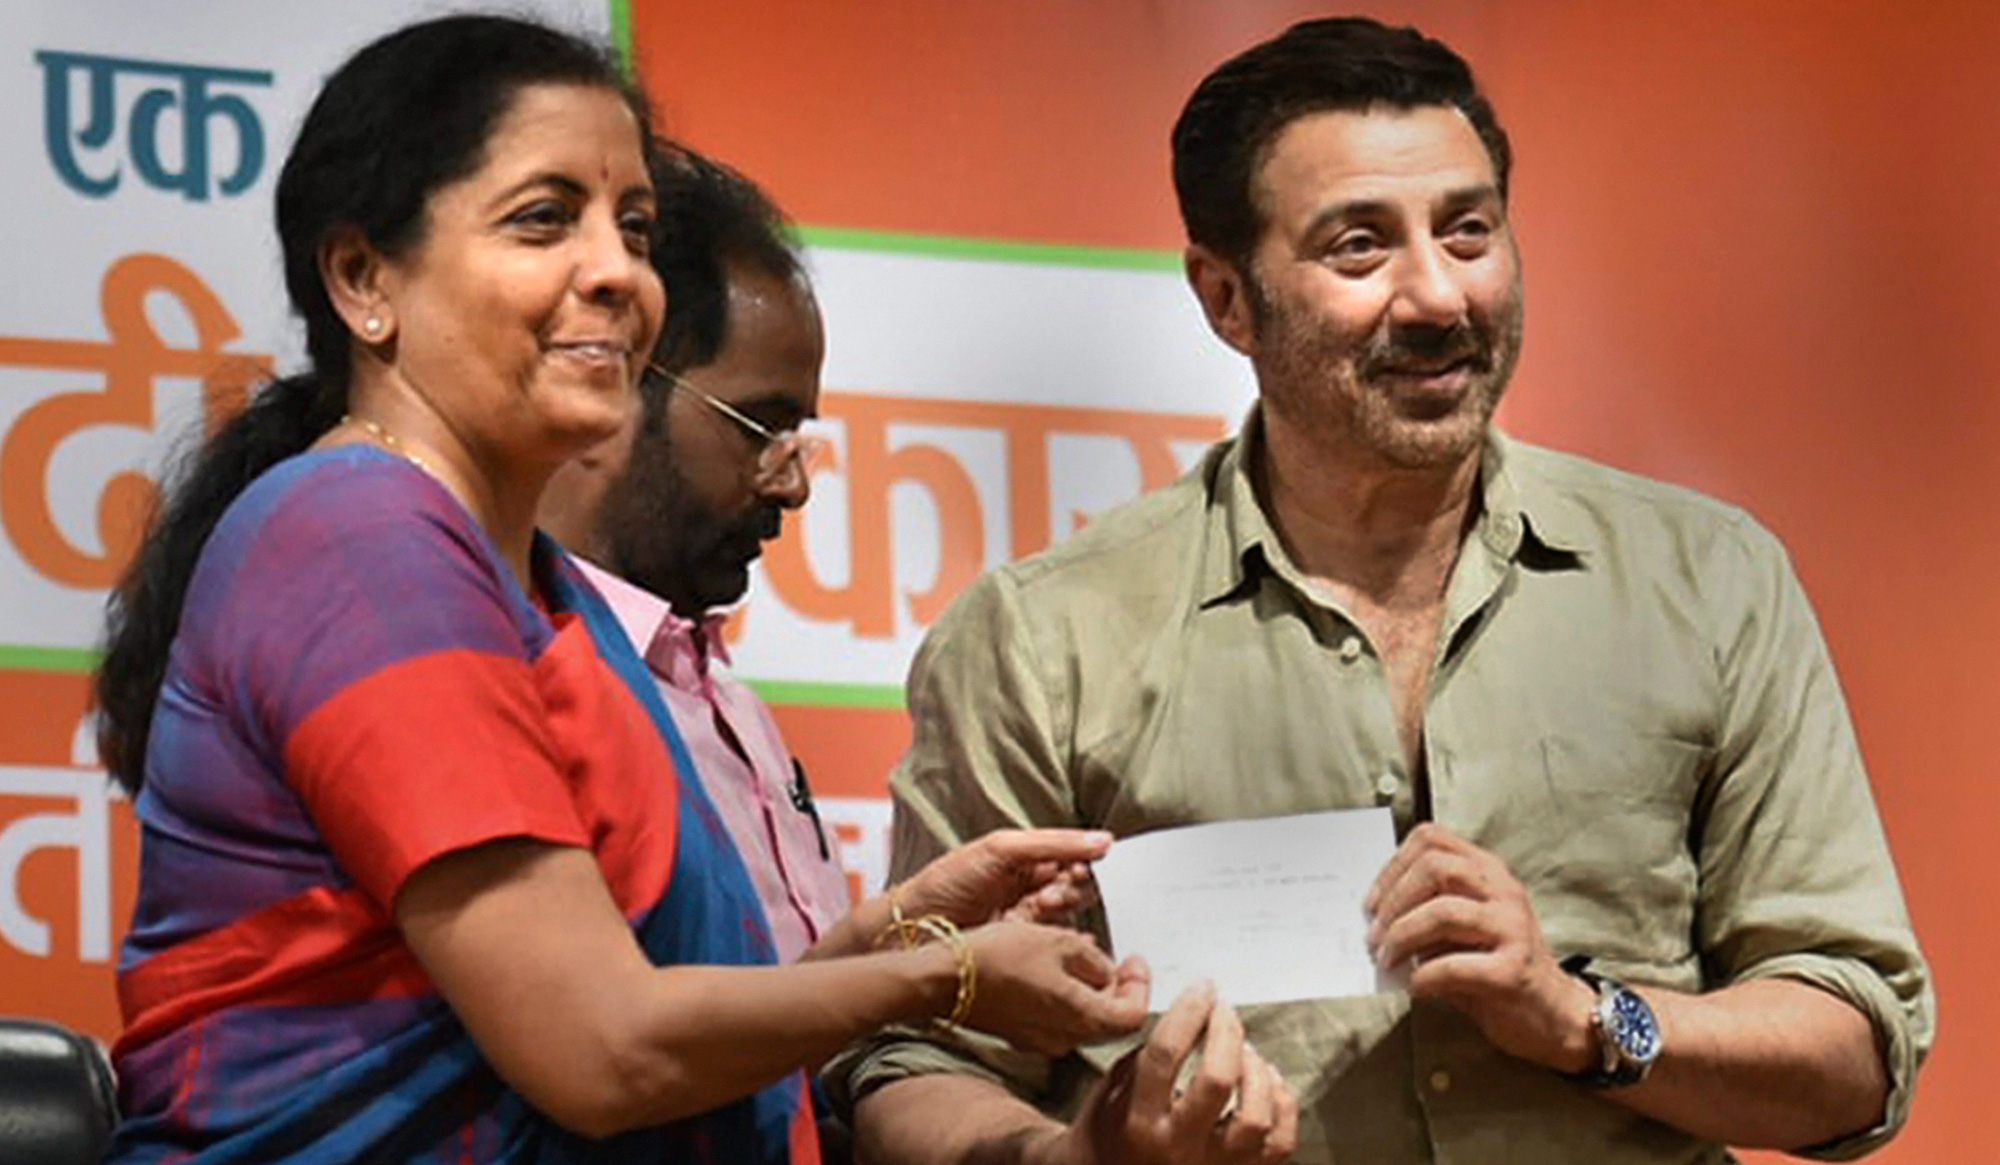 Nirmala Sitharaman inducts actor Sunny Deol into the BJP at the party's headquarters in New Delhi on Tuesday, April 23, 2019